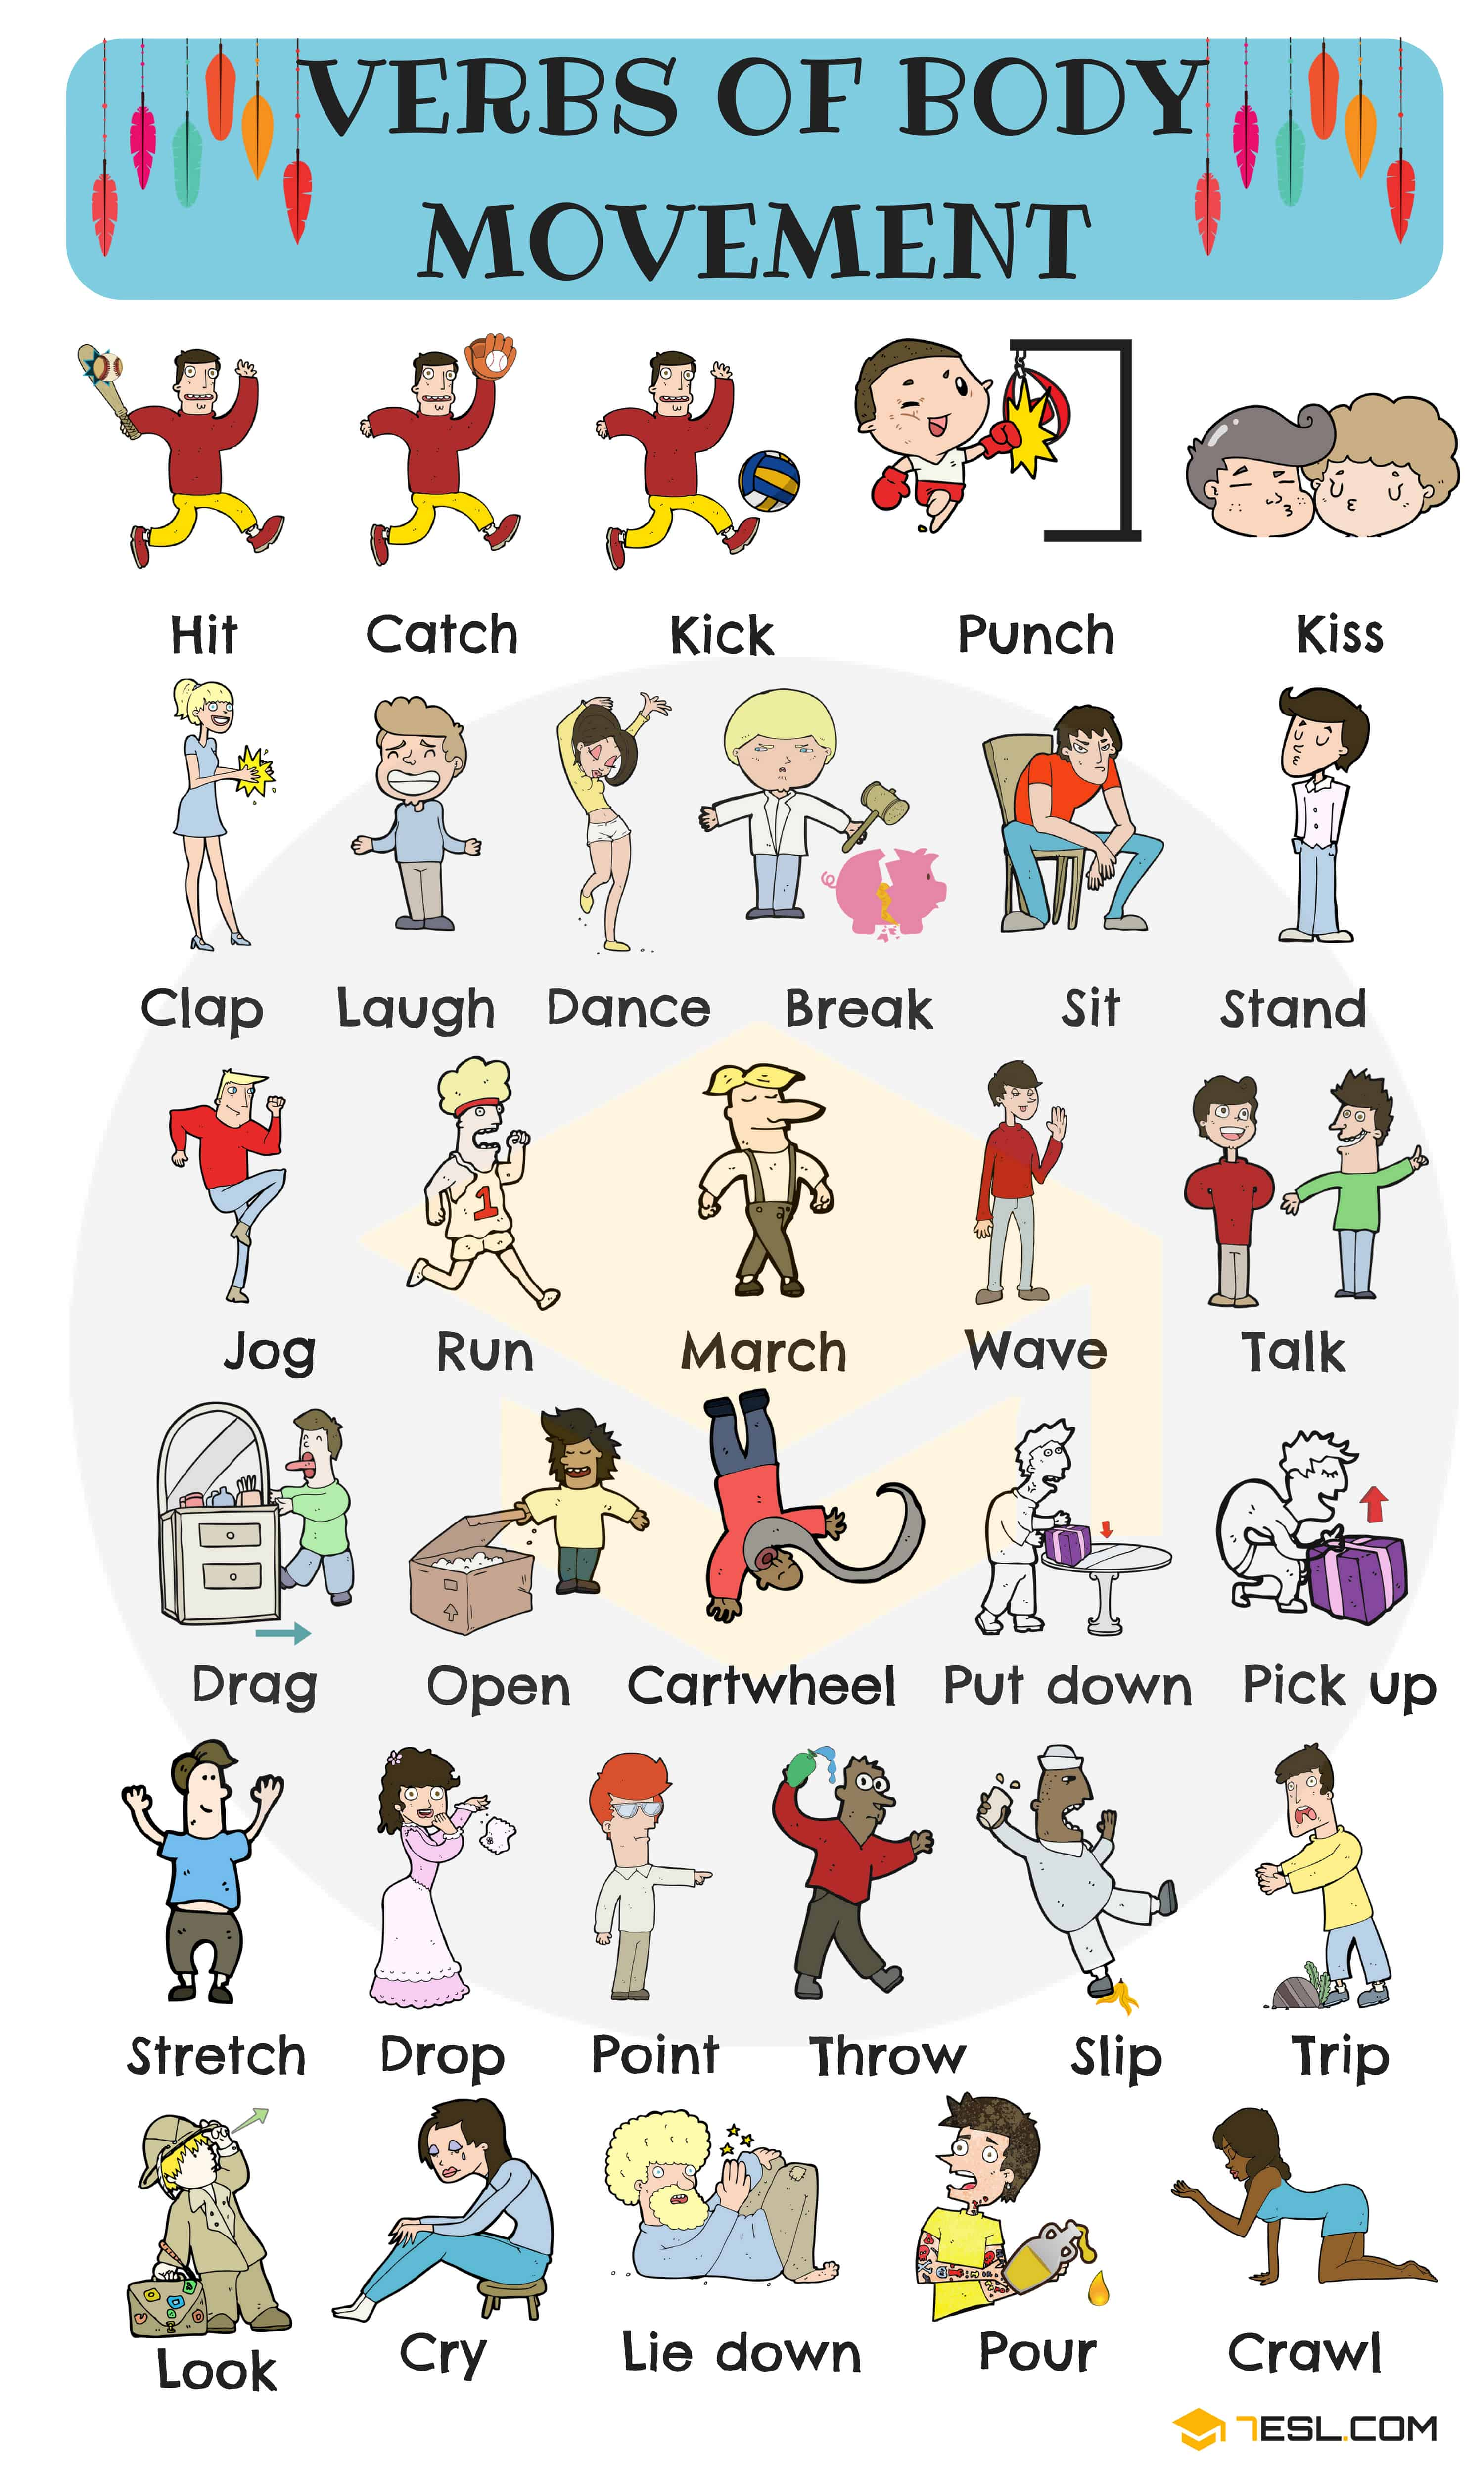 Useful List Of Common Verbs Of Body Movement In English